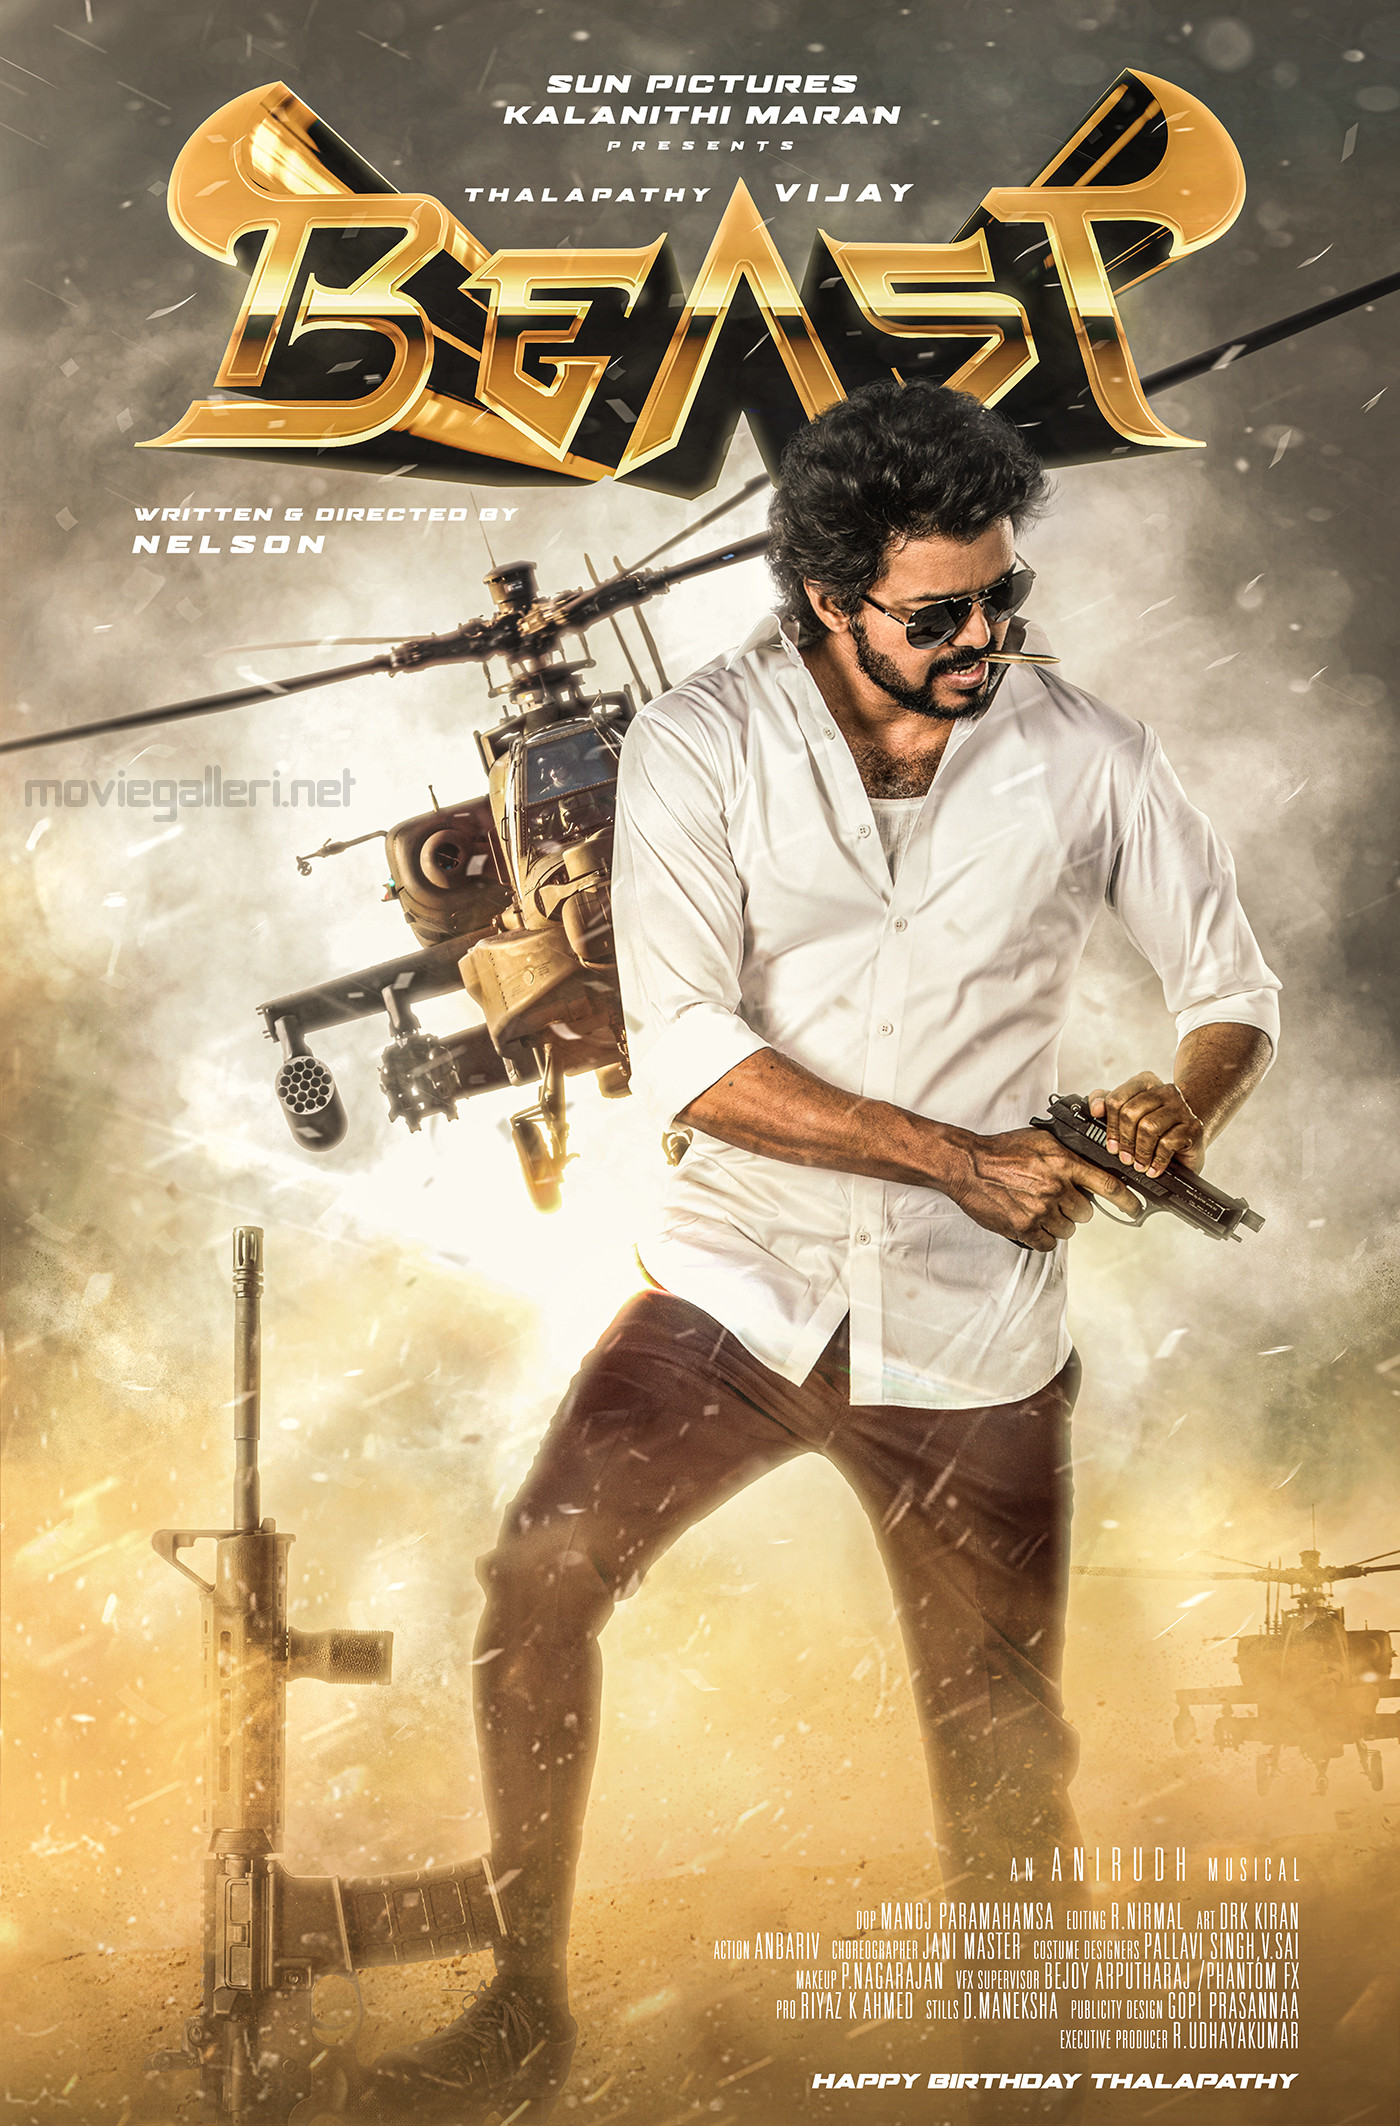 Thalapathy 65 Vijay Birthday Wishes BEAST Movie Second Look Poster HD